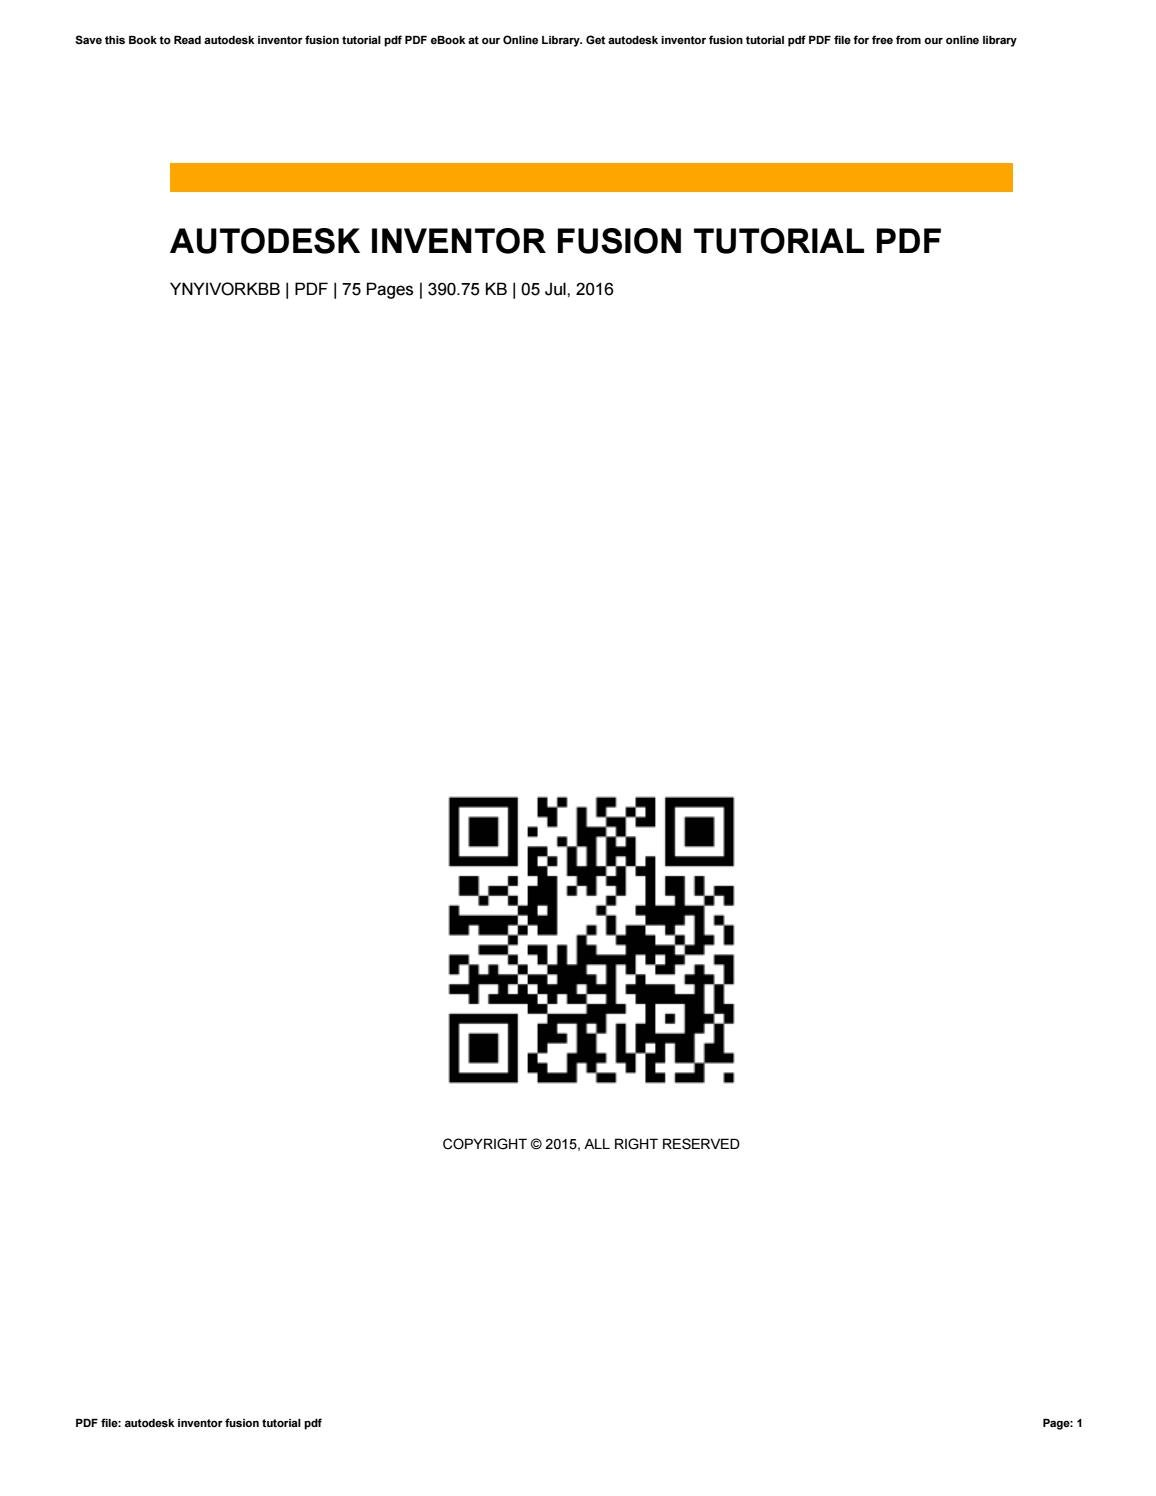 Autodesk inventor fusion tutorial pdf by stevenhunt2648 issuu baditri Image collections